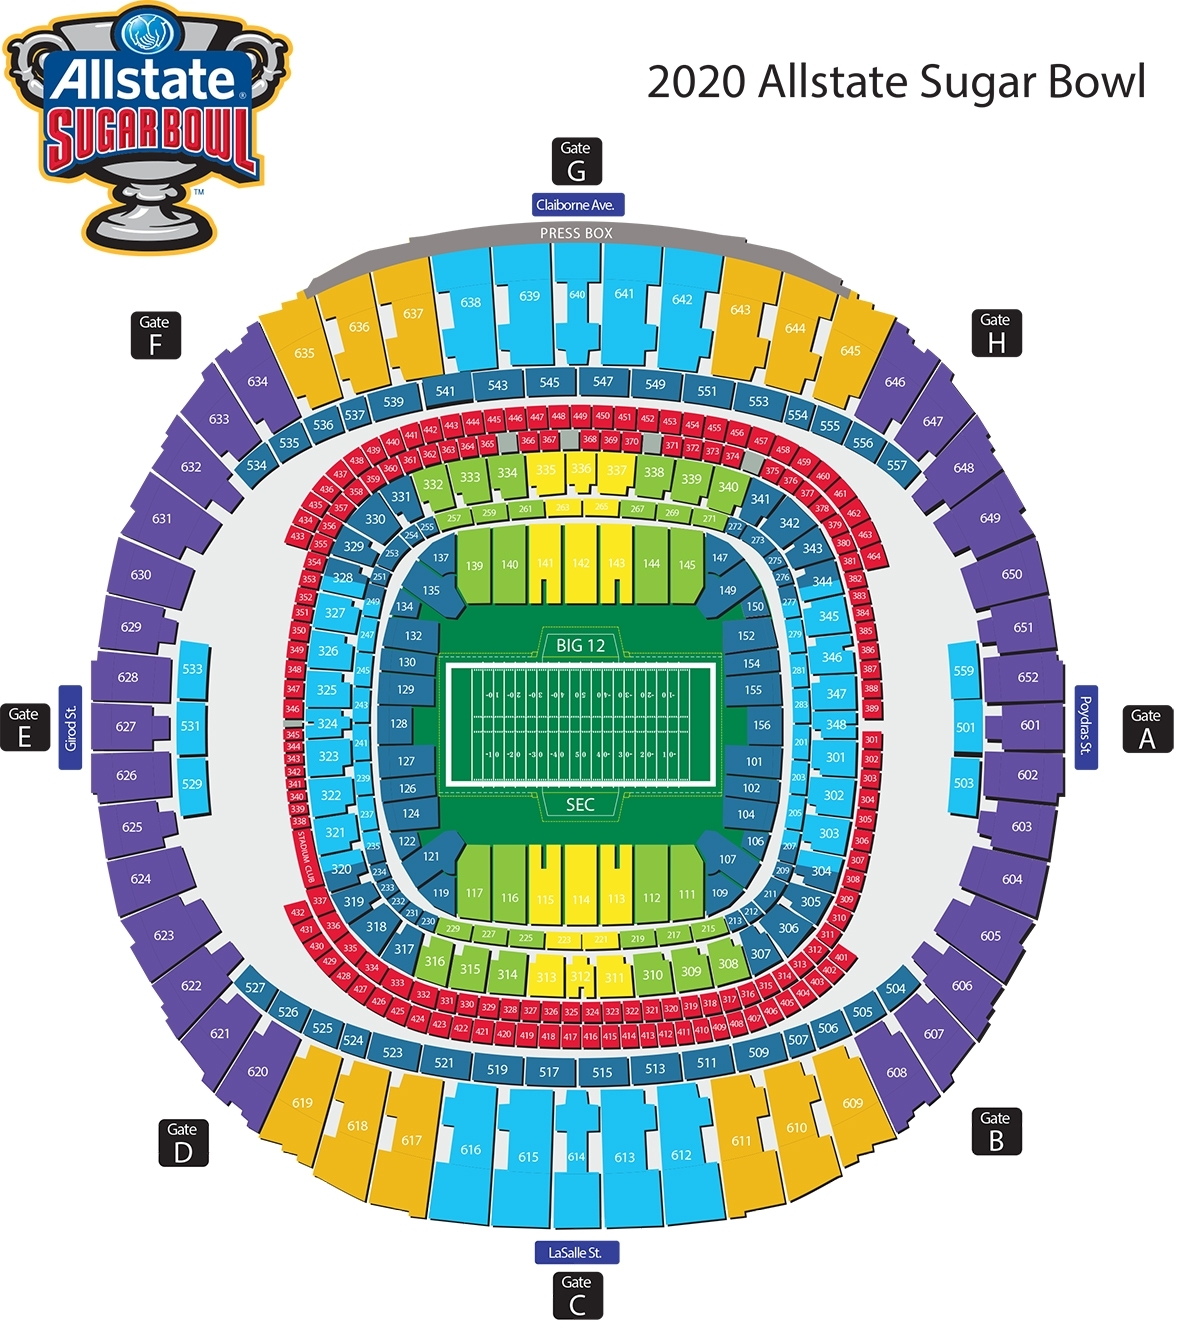 Seating Diagram - Official Site Of The Allstate Sugar Bowl throughout Super Bowl Seating Capacity